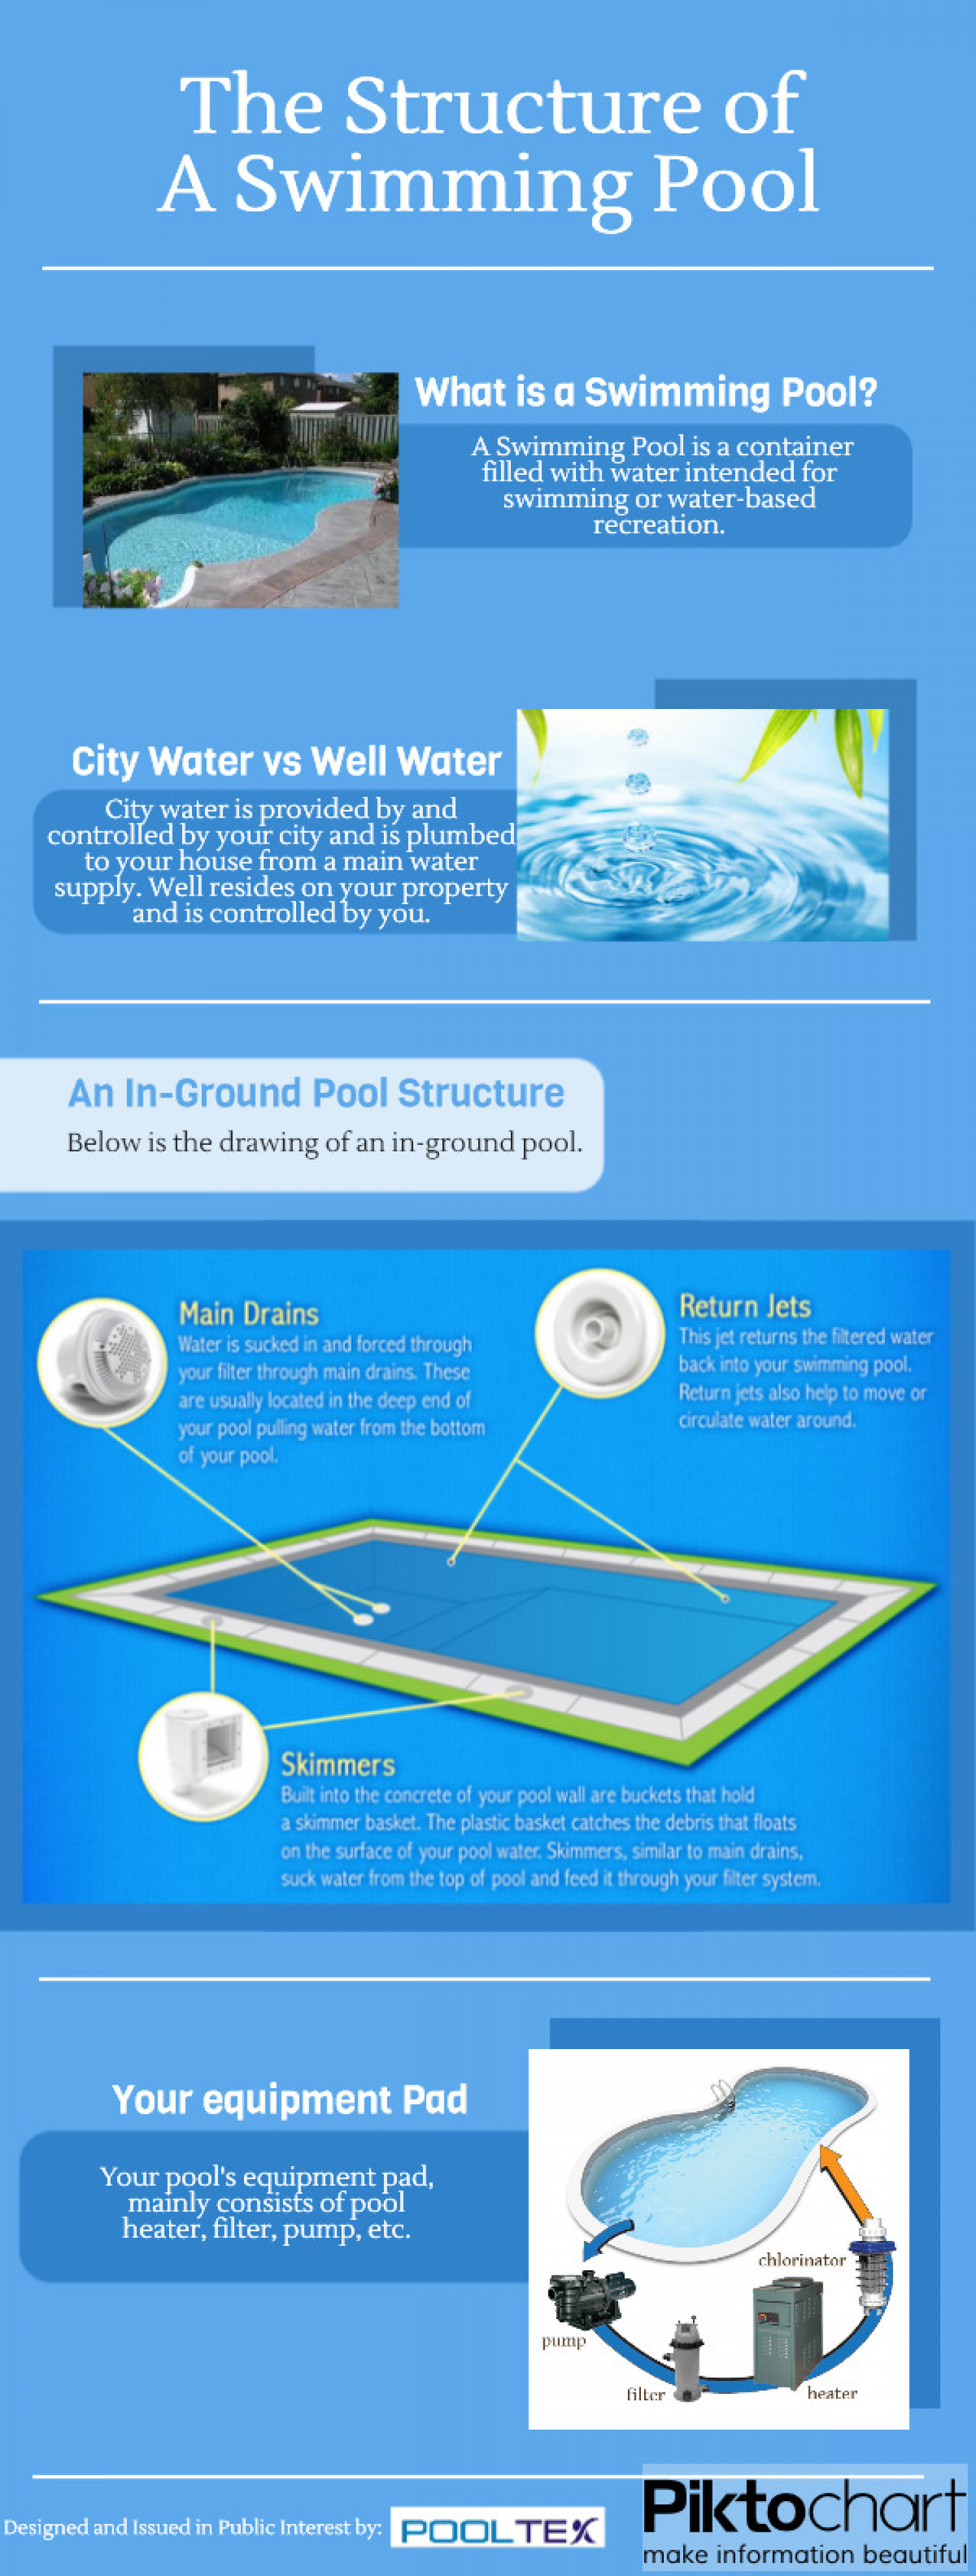 The Structure of A Swimming Pool Infographic